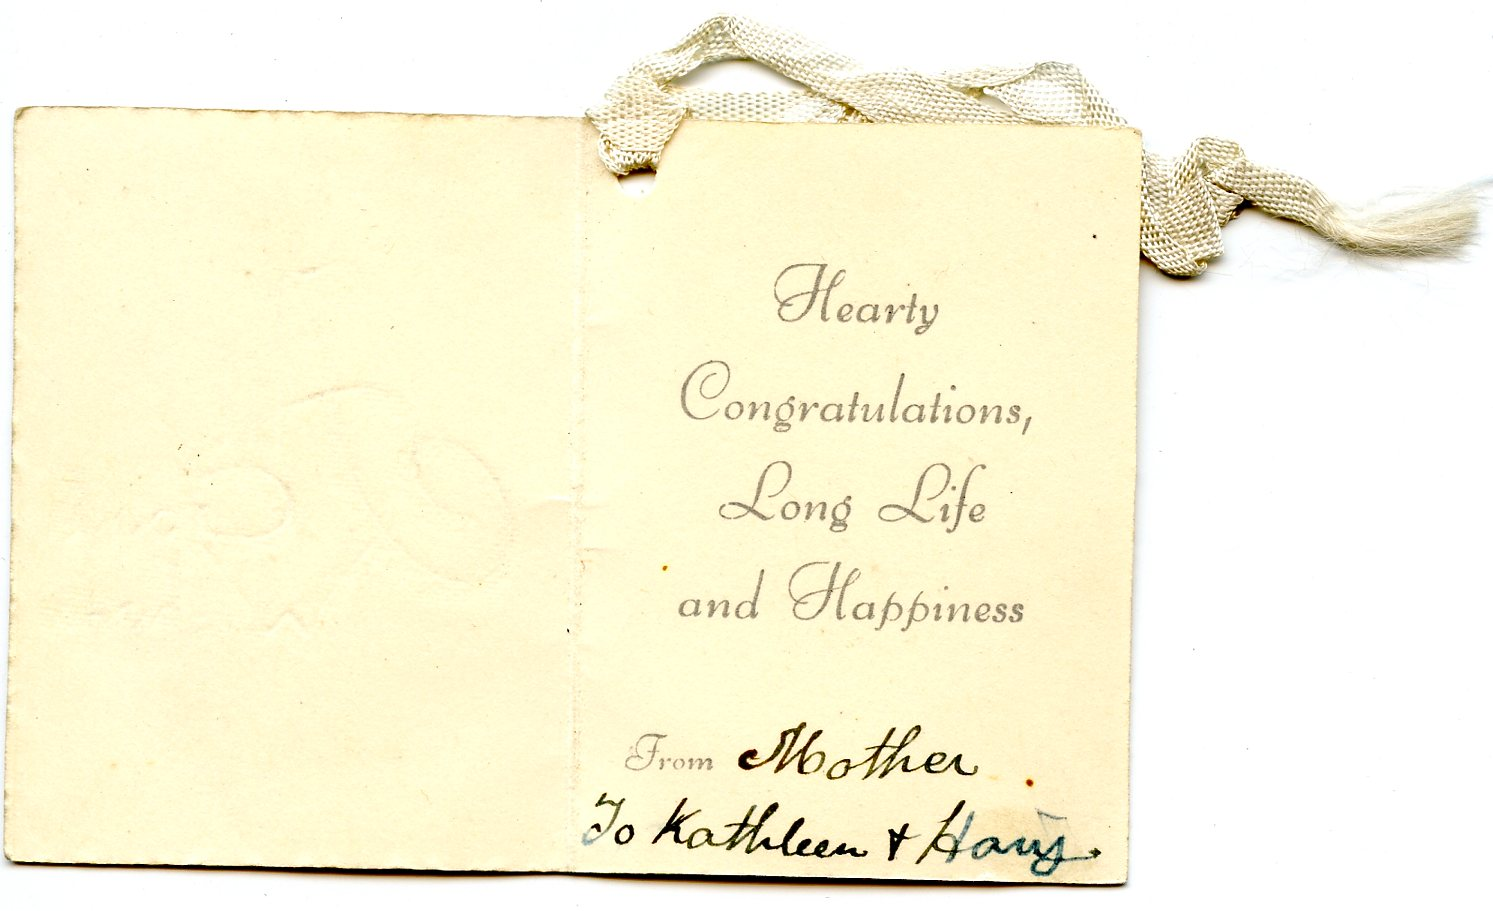 Crout K And H Message In Wedding Card Seeking Susan Meeting Marie Finding Family